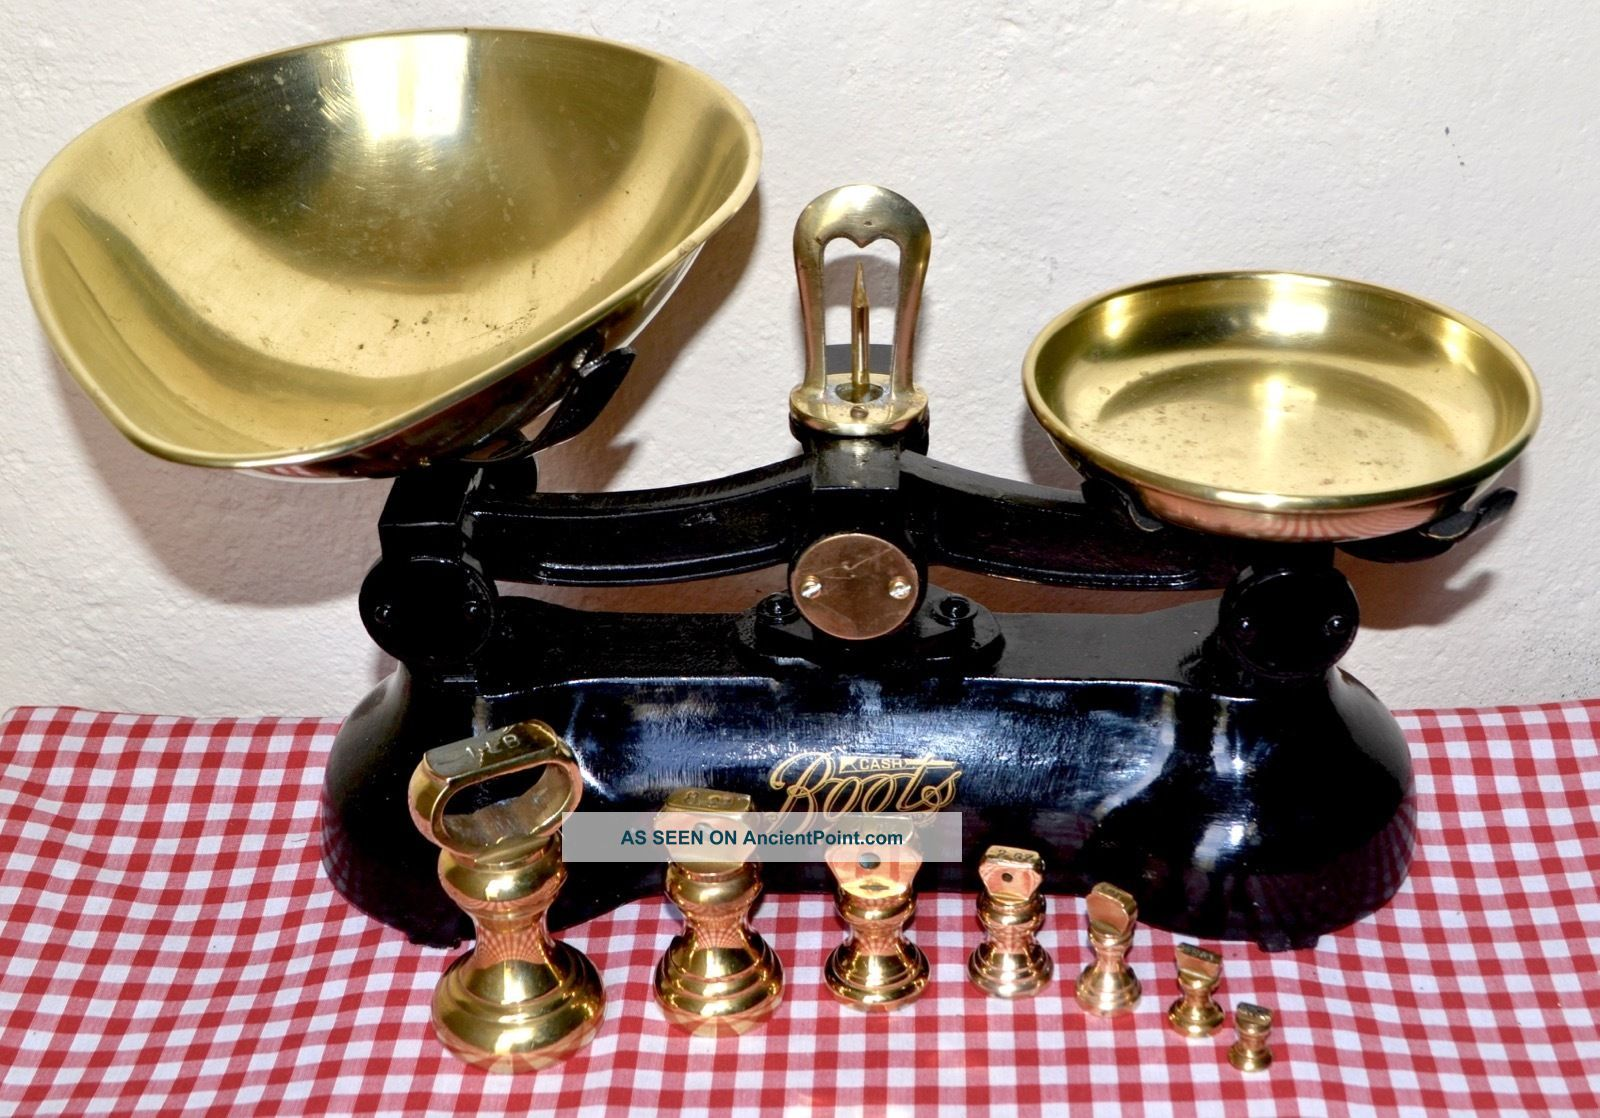 Vintage English Black Boots Cash Chemists Kitchen Scales 7 Brass Bell Weights Scales photo